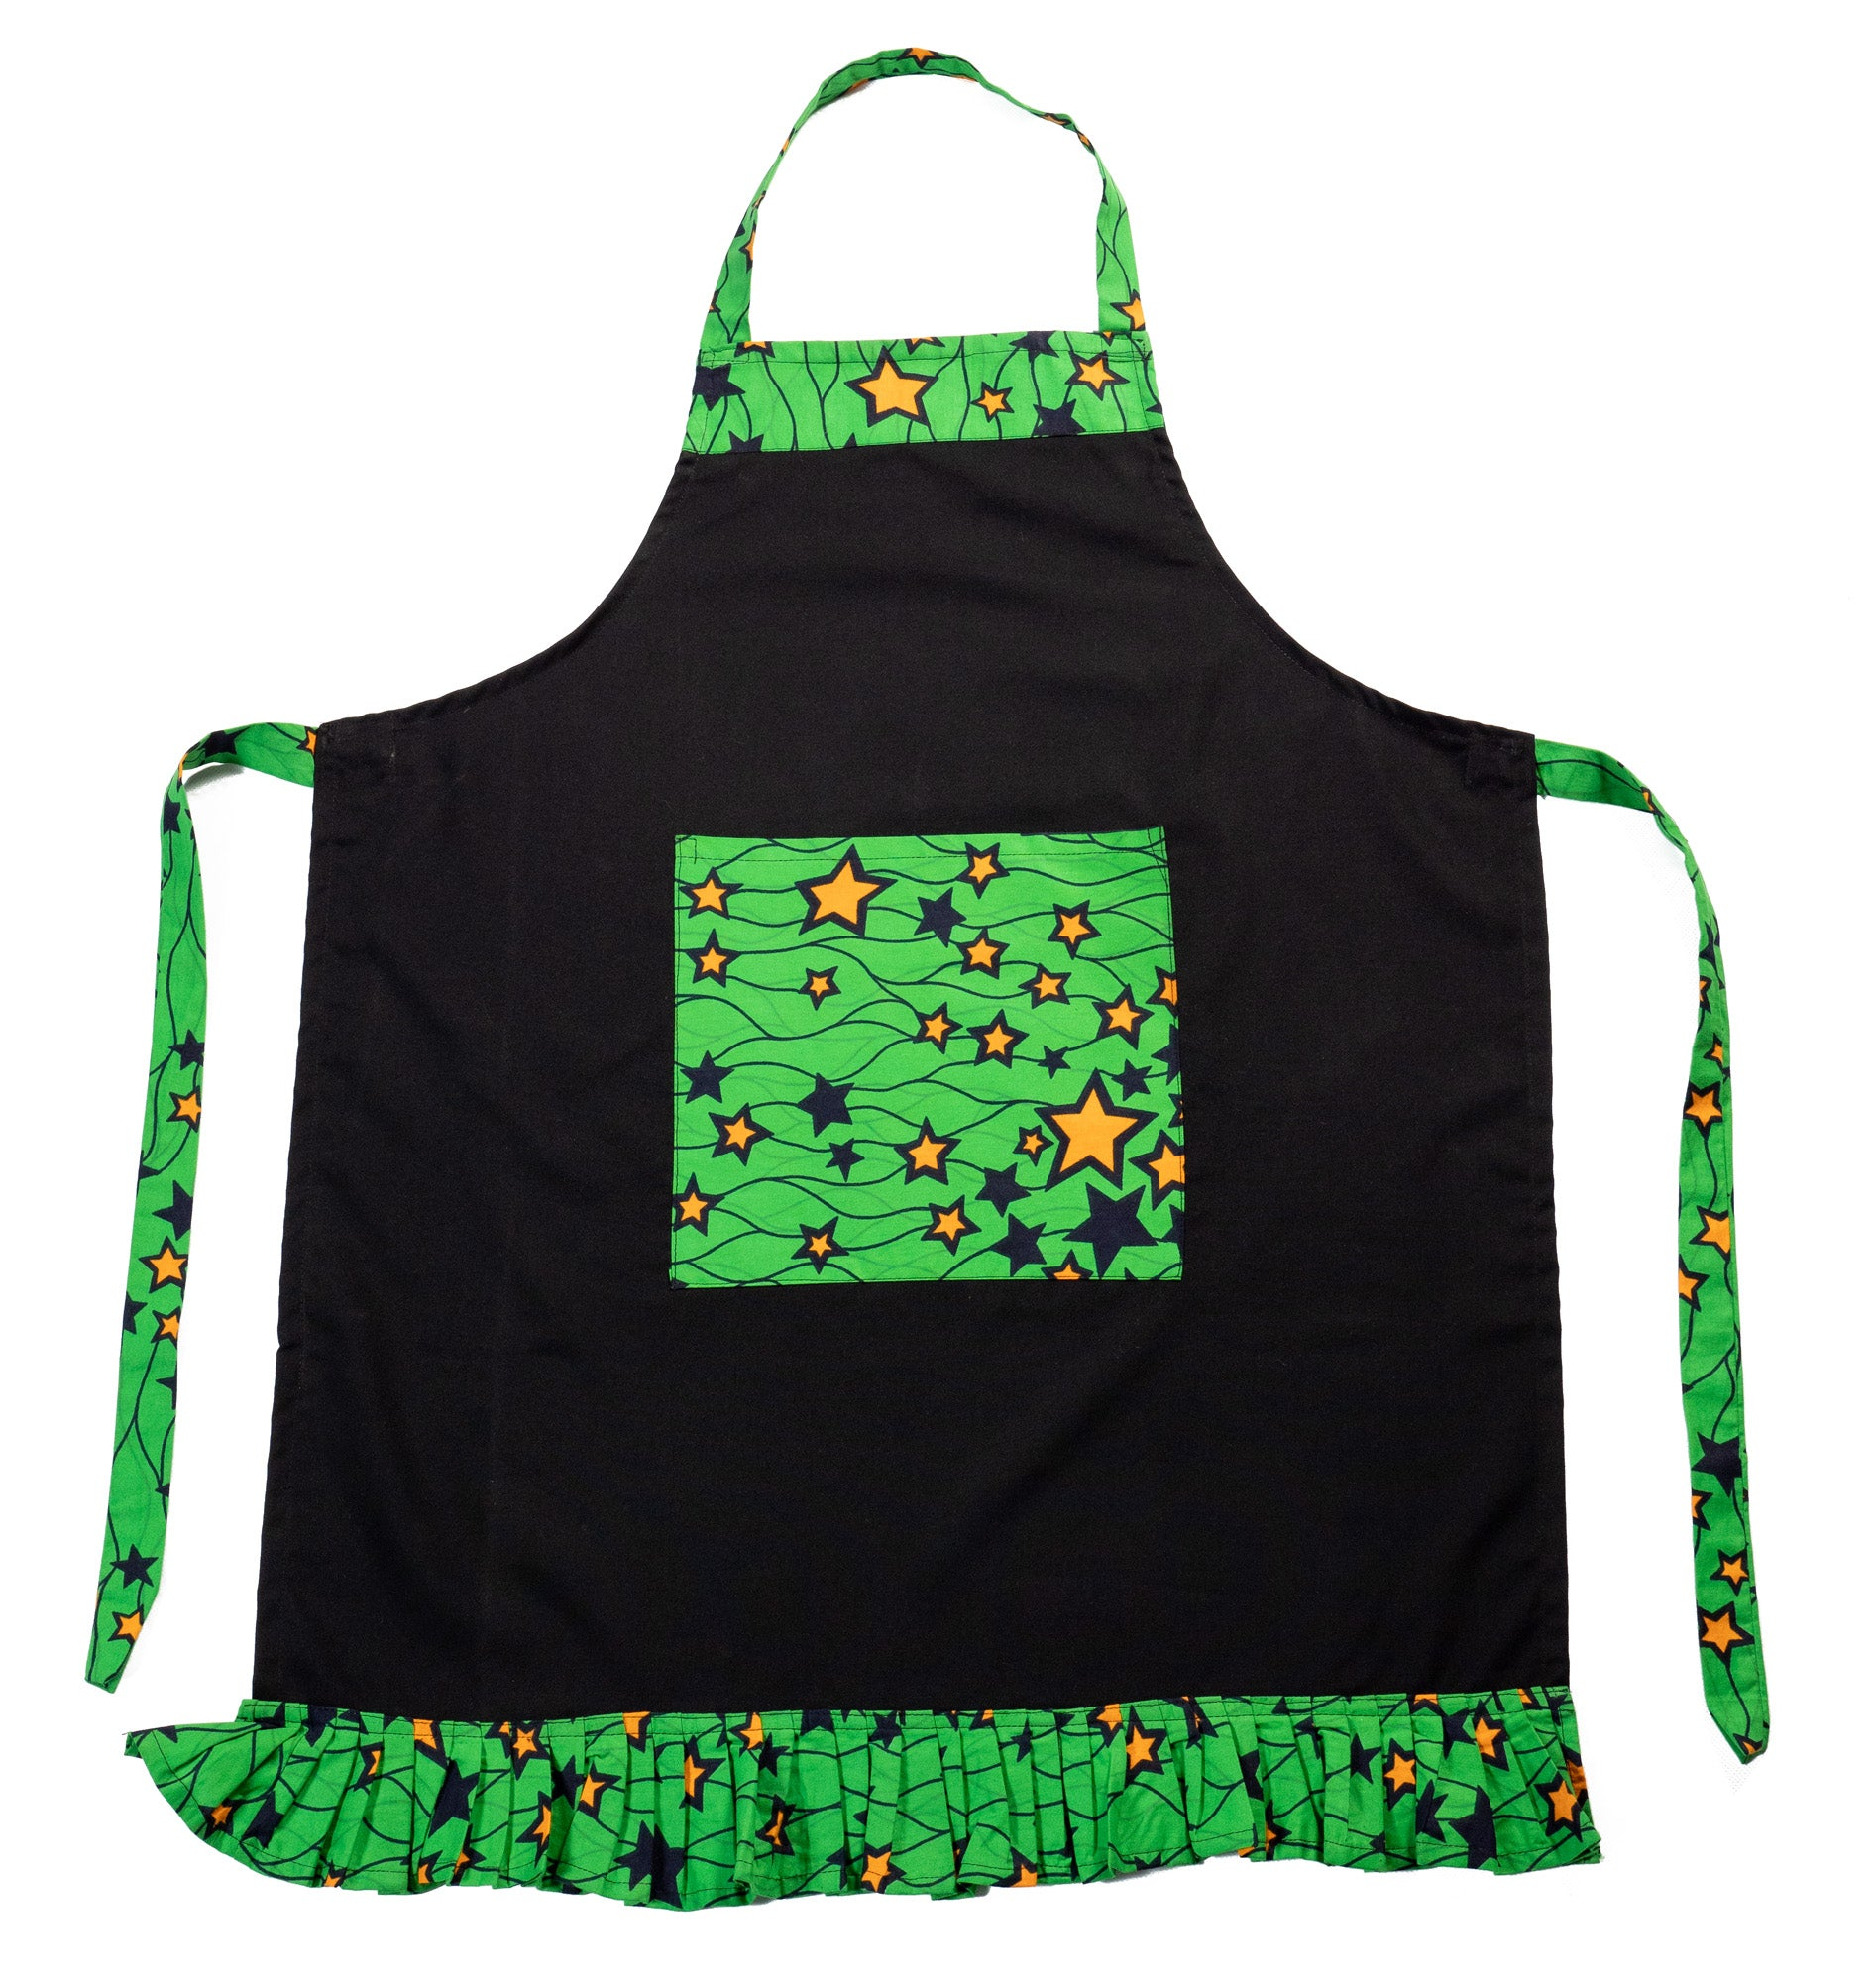 Adult Ruffled Apron with Pockets, Black, Green & Yellow